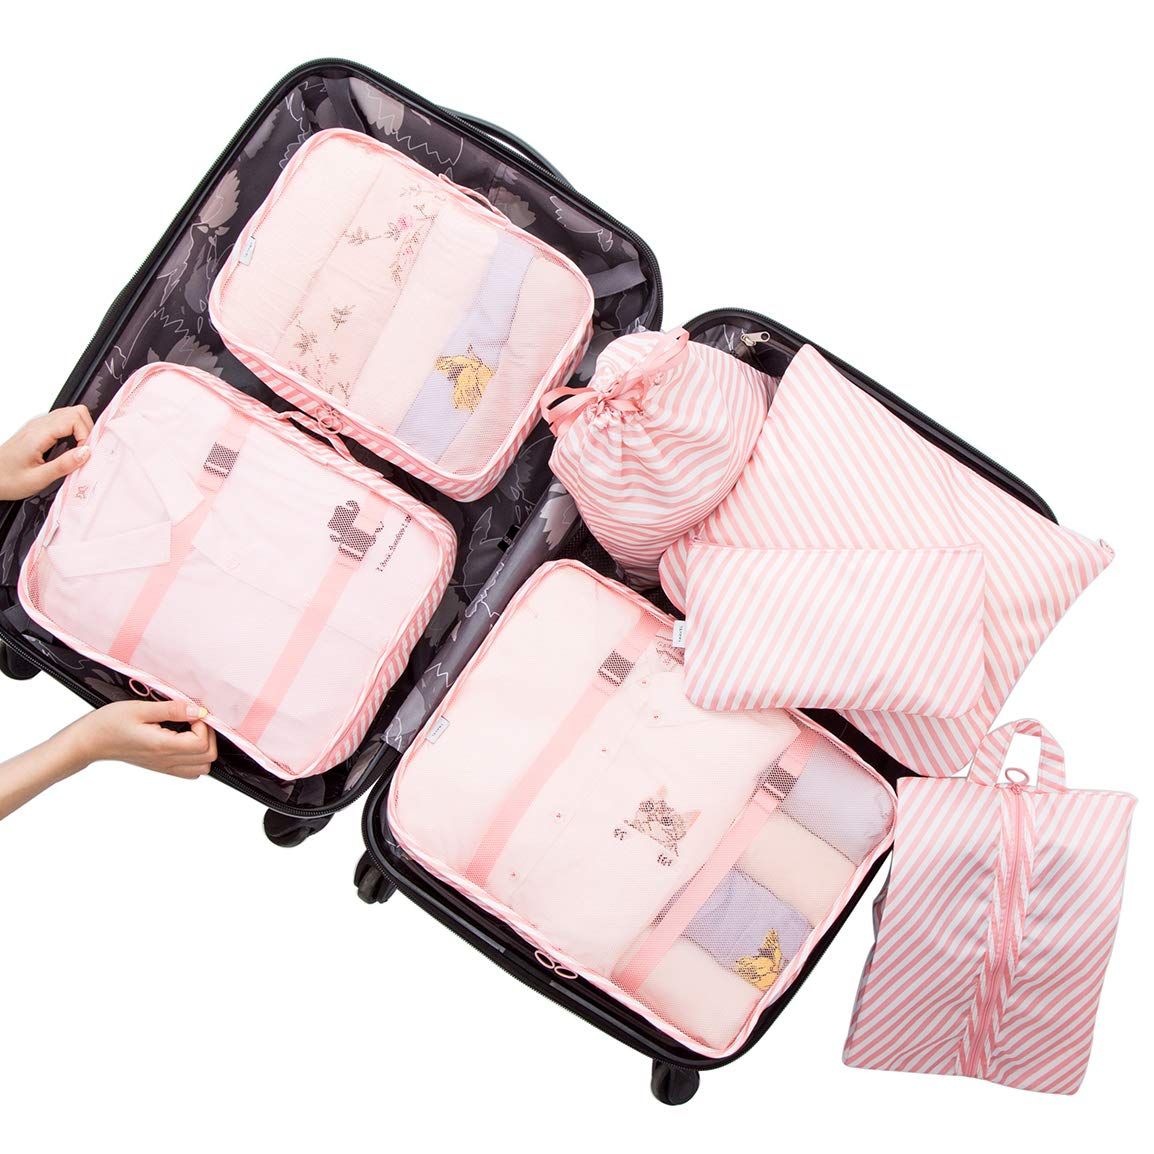 Belsmi 7 Set Packing Cubes With Shoe Bag - I've heard dozens of members of the planner community rave about the benefits of packing cubes so I decided to finally give them a try. Me being me, I couldn't get some plain boring cubes though. I ordered these classic pink and white striped cubes and while they're not compression level like they claim they're very functional and definitely get the job done. I highly recommend these cubes.